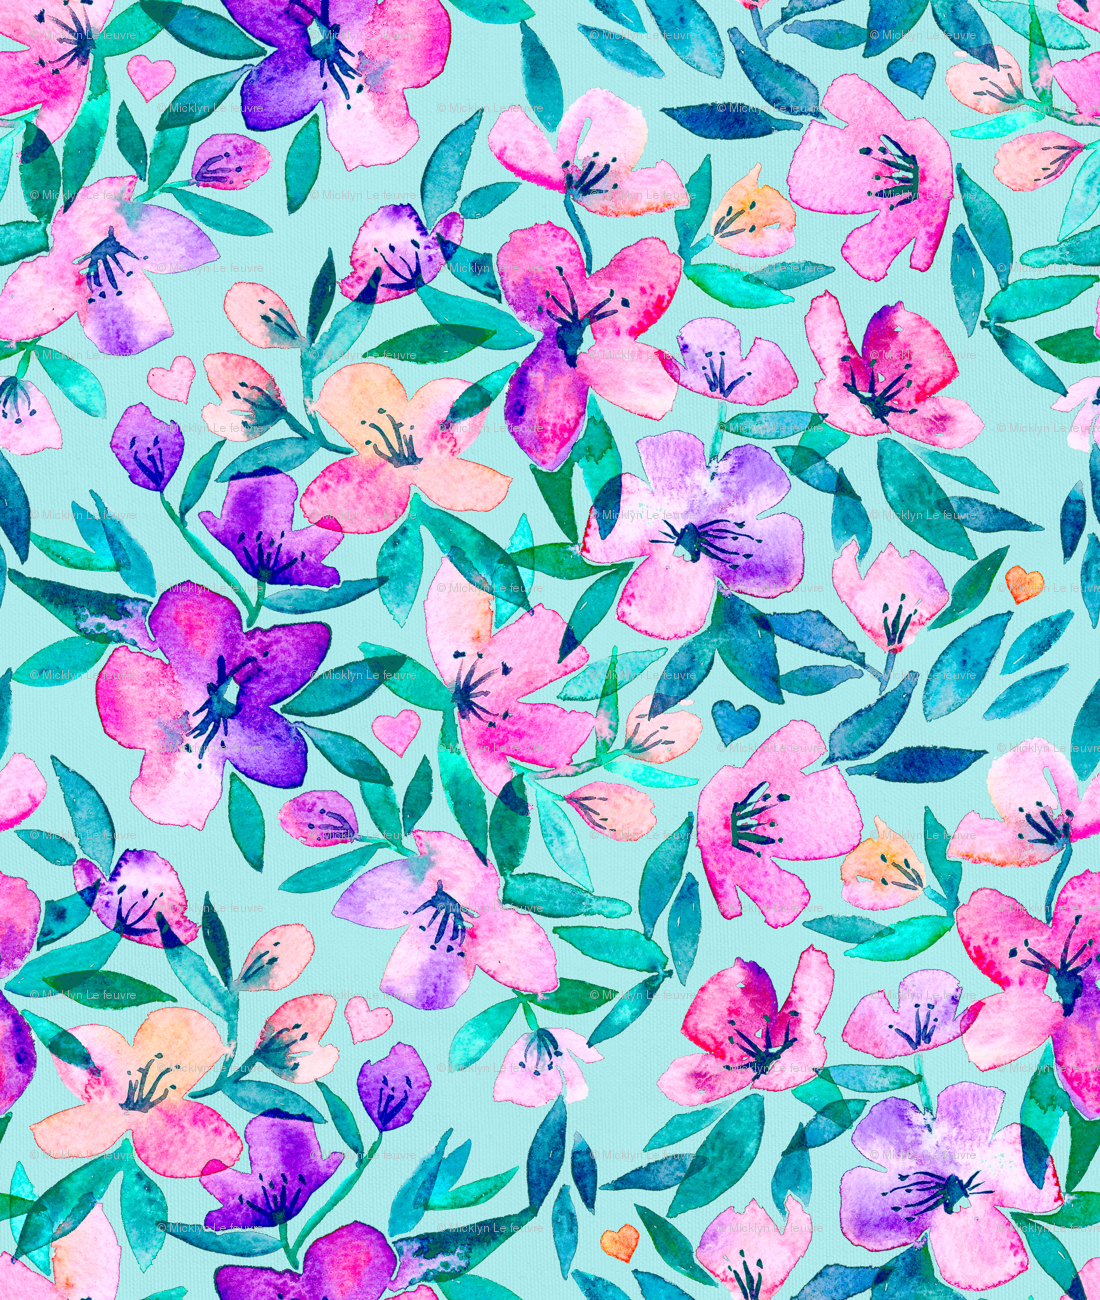 tiffany blue and purple spring floral - large wallpaper - micklyn